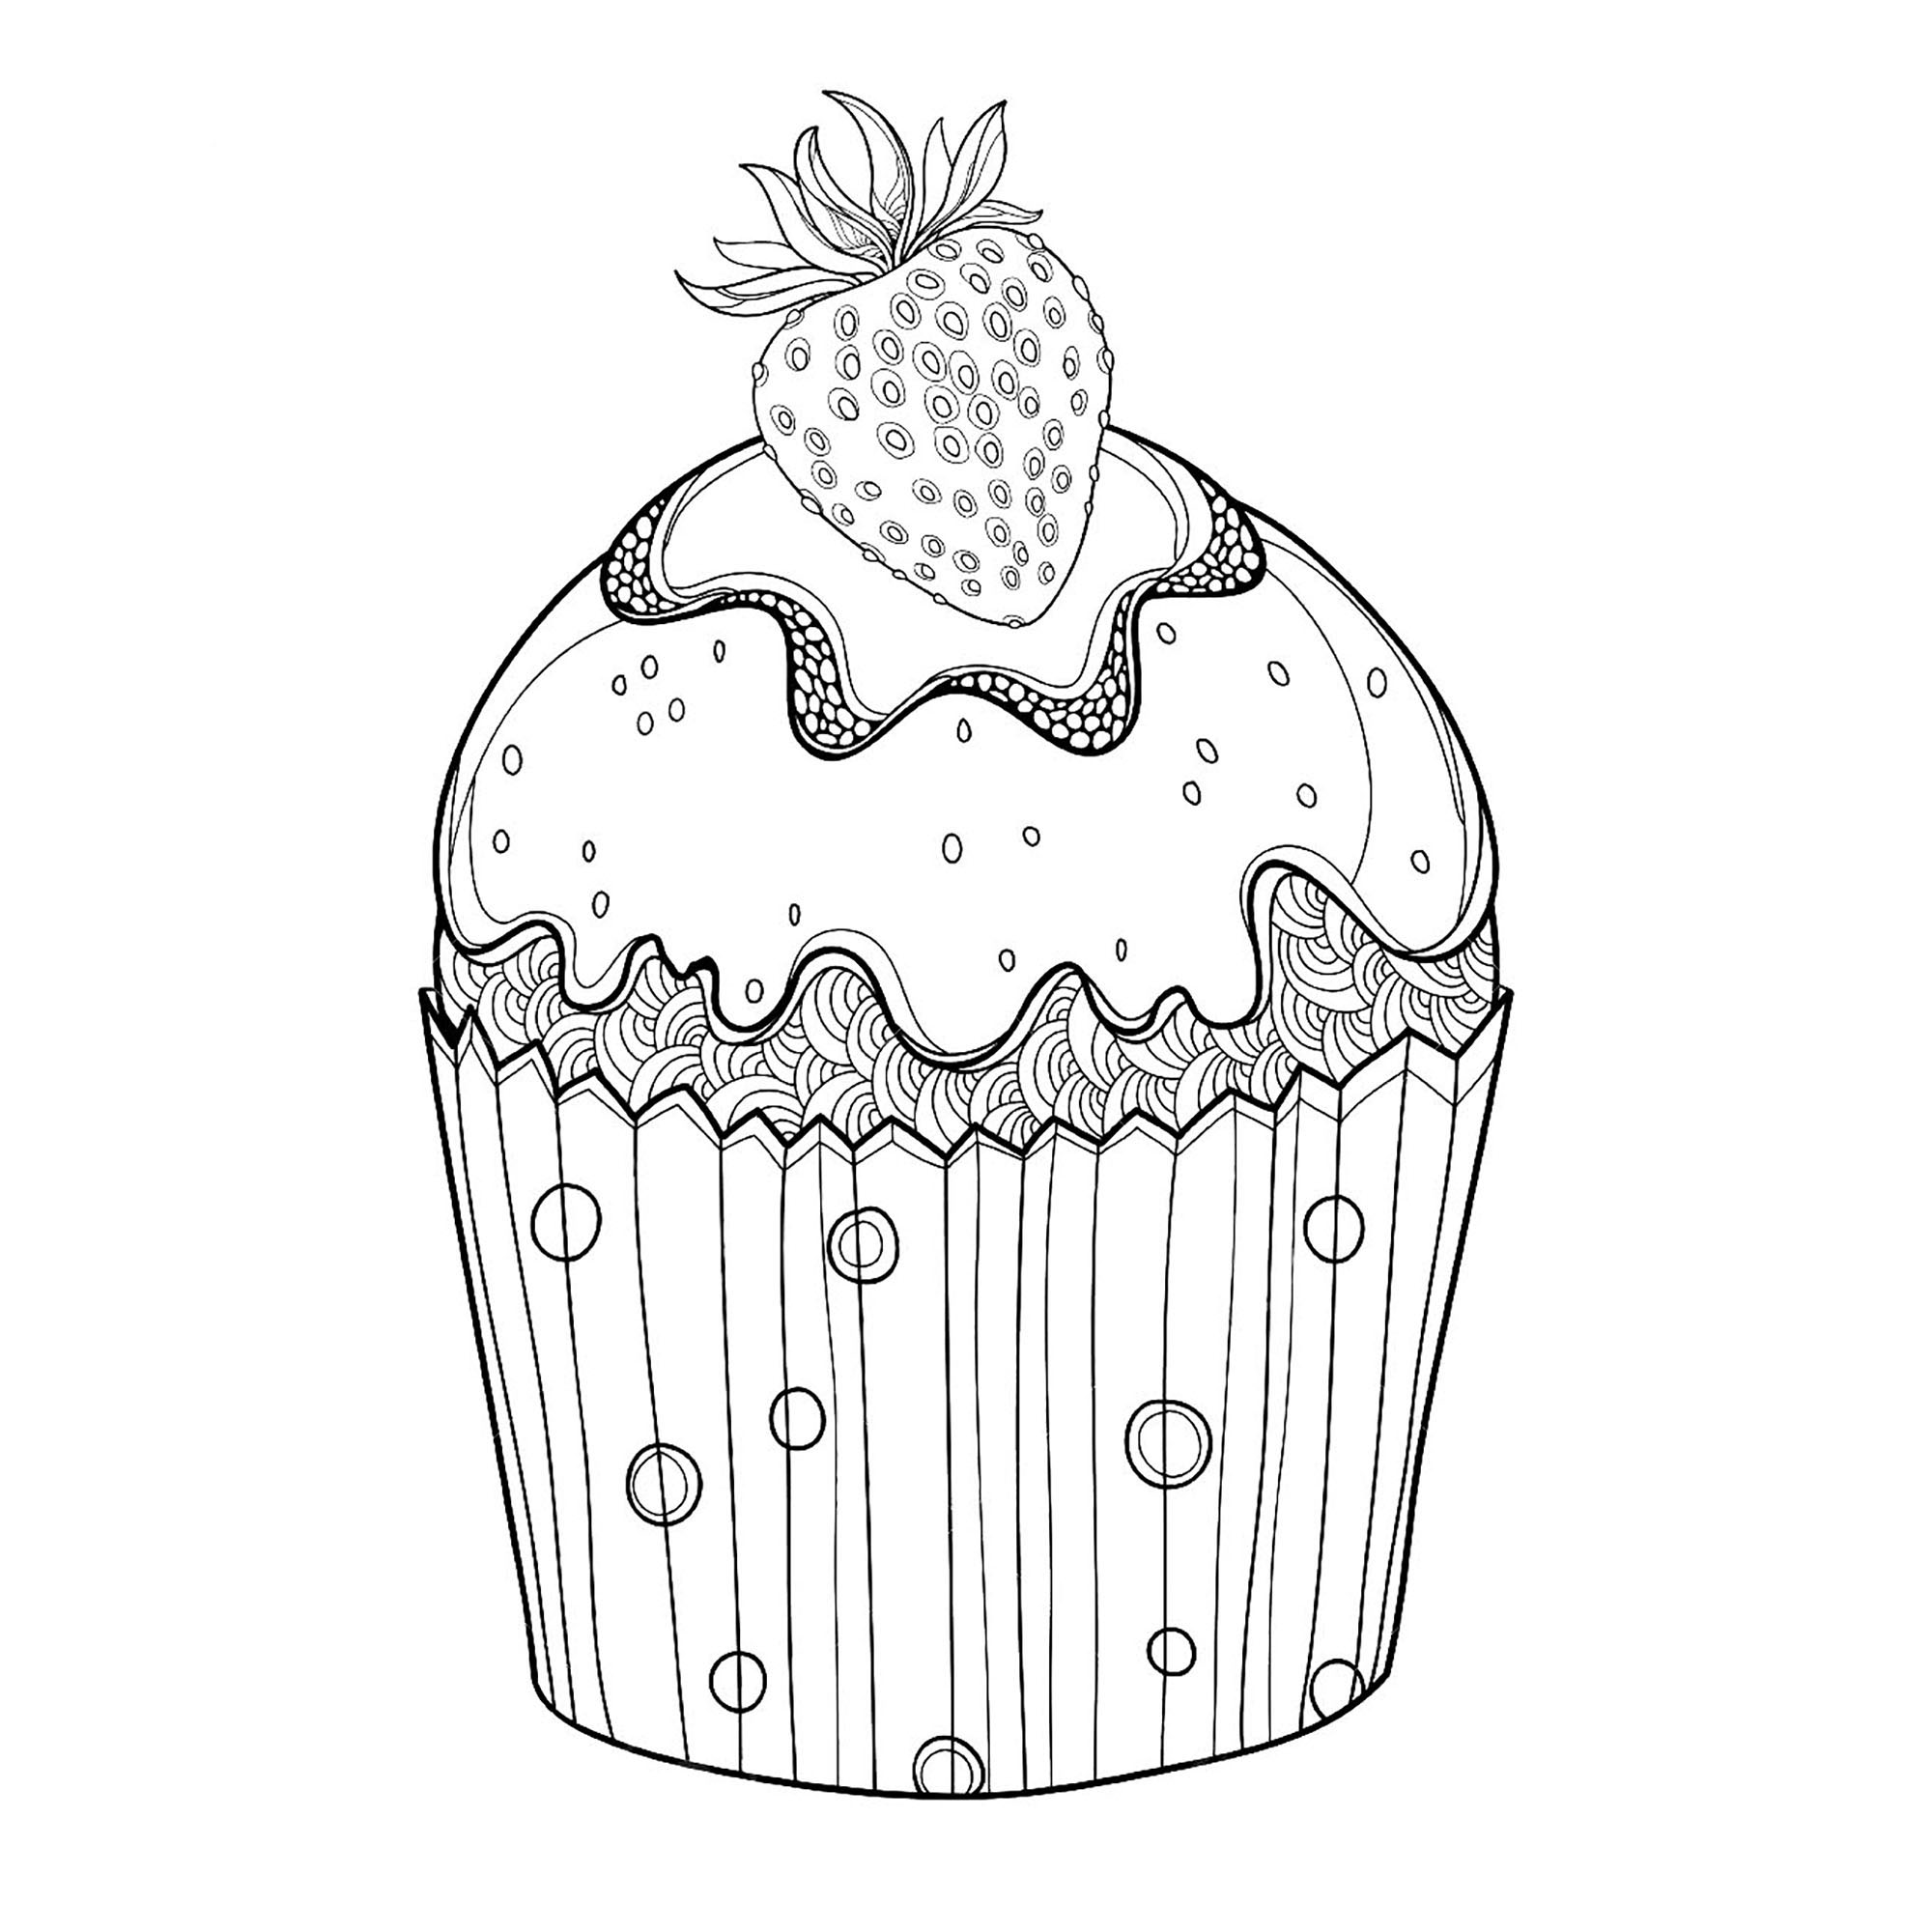 Cupcakes And Cakes Free To Color For Children